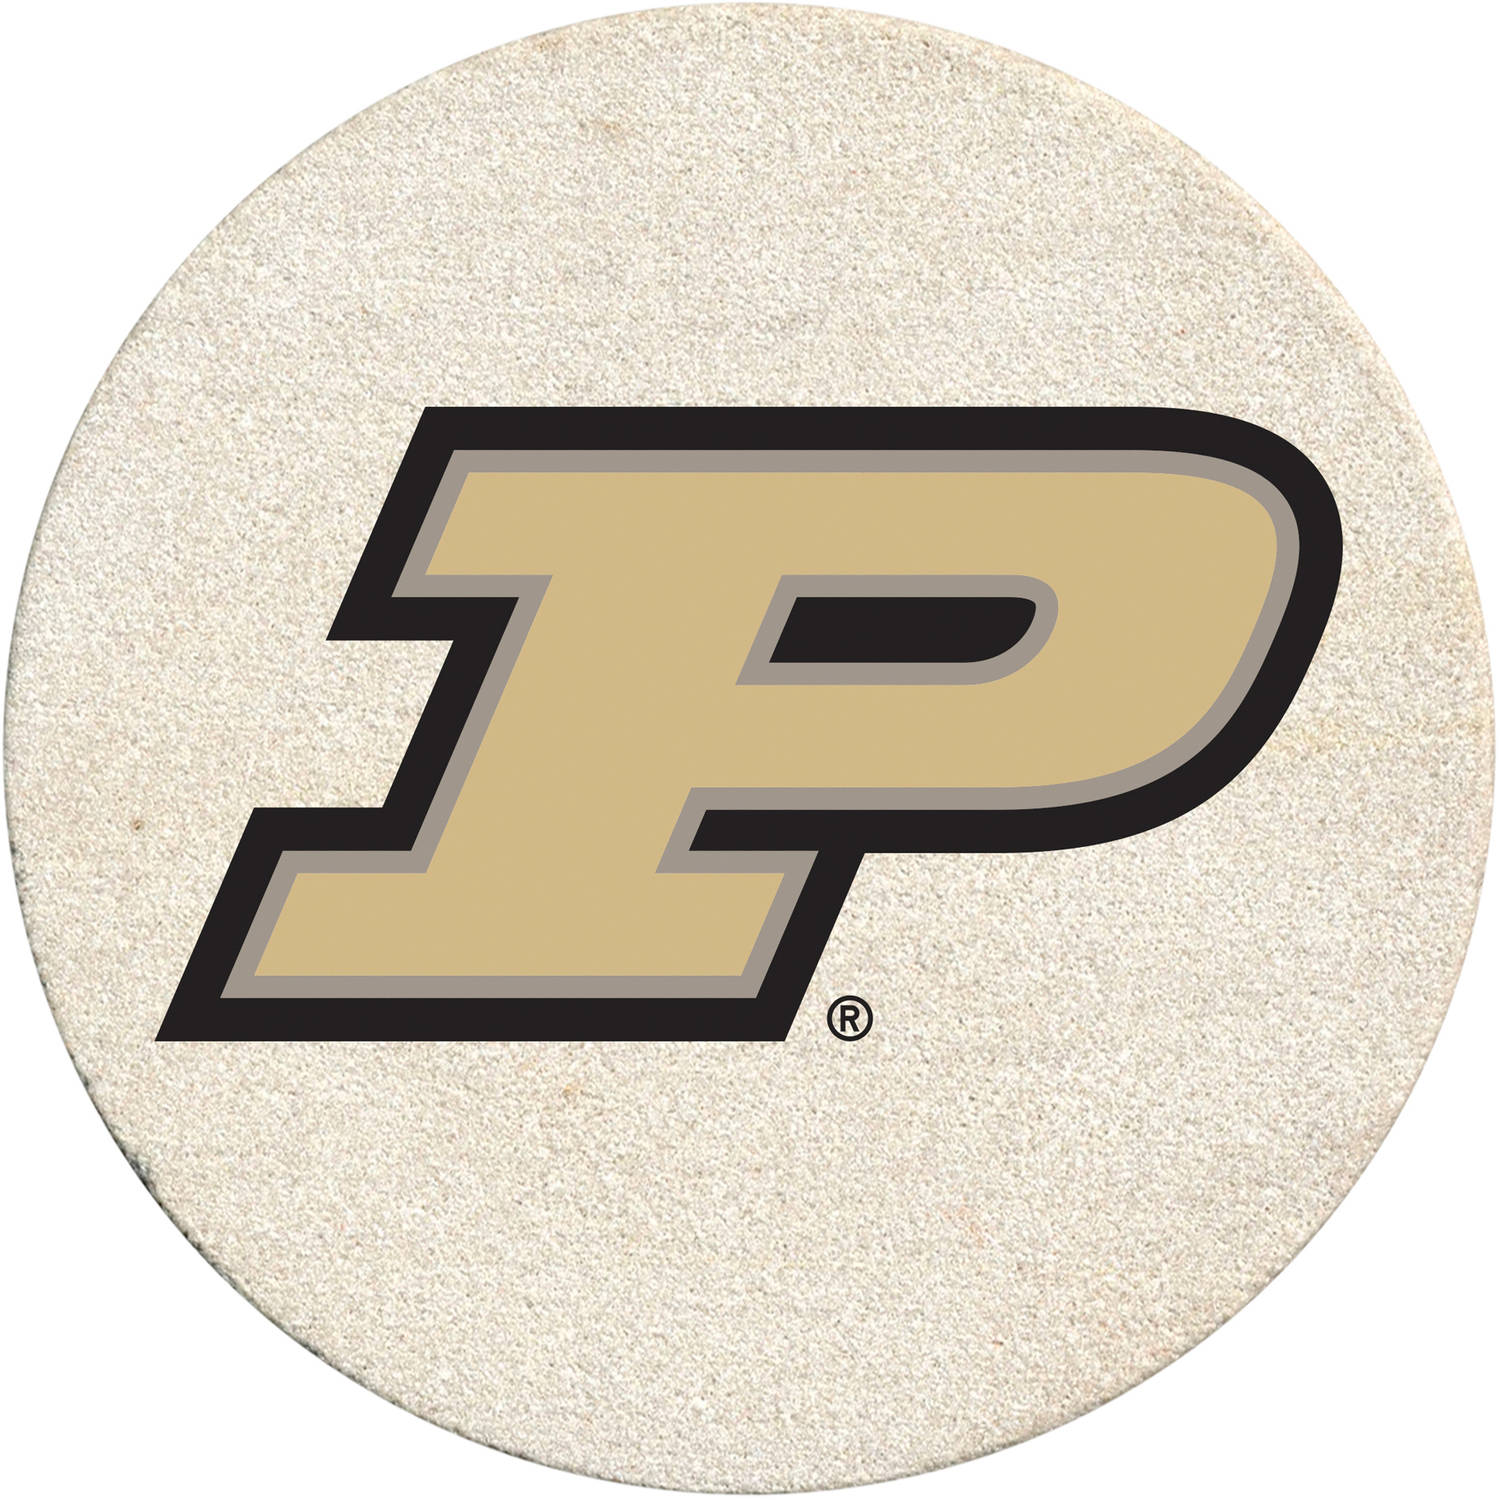 Thirstystone Drink Coaster Set, Purdue University